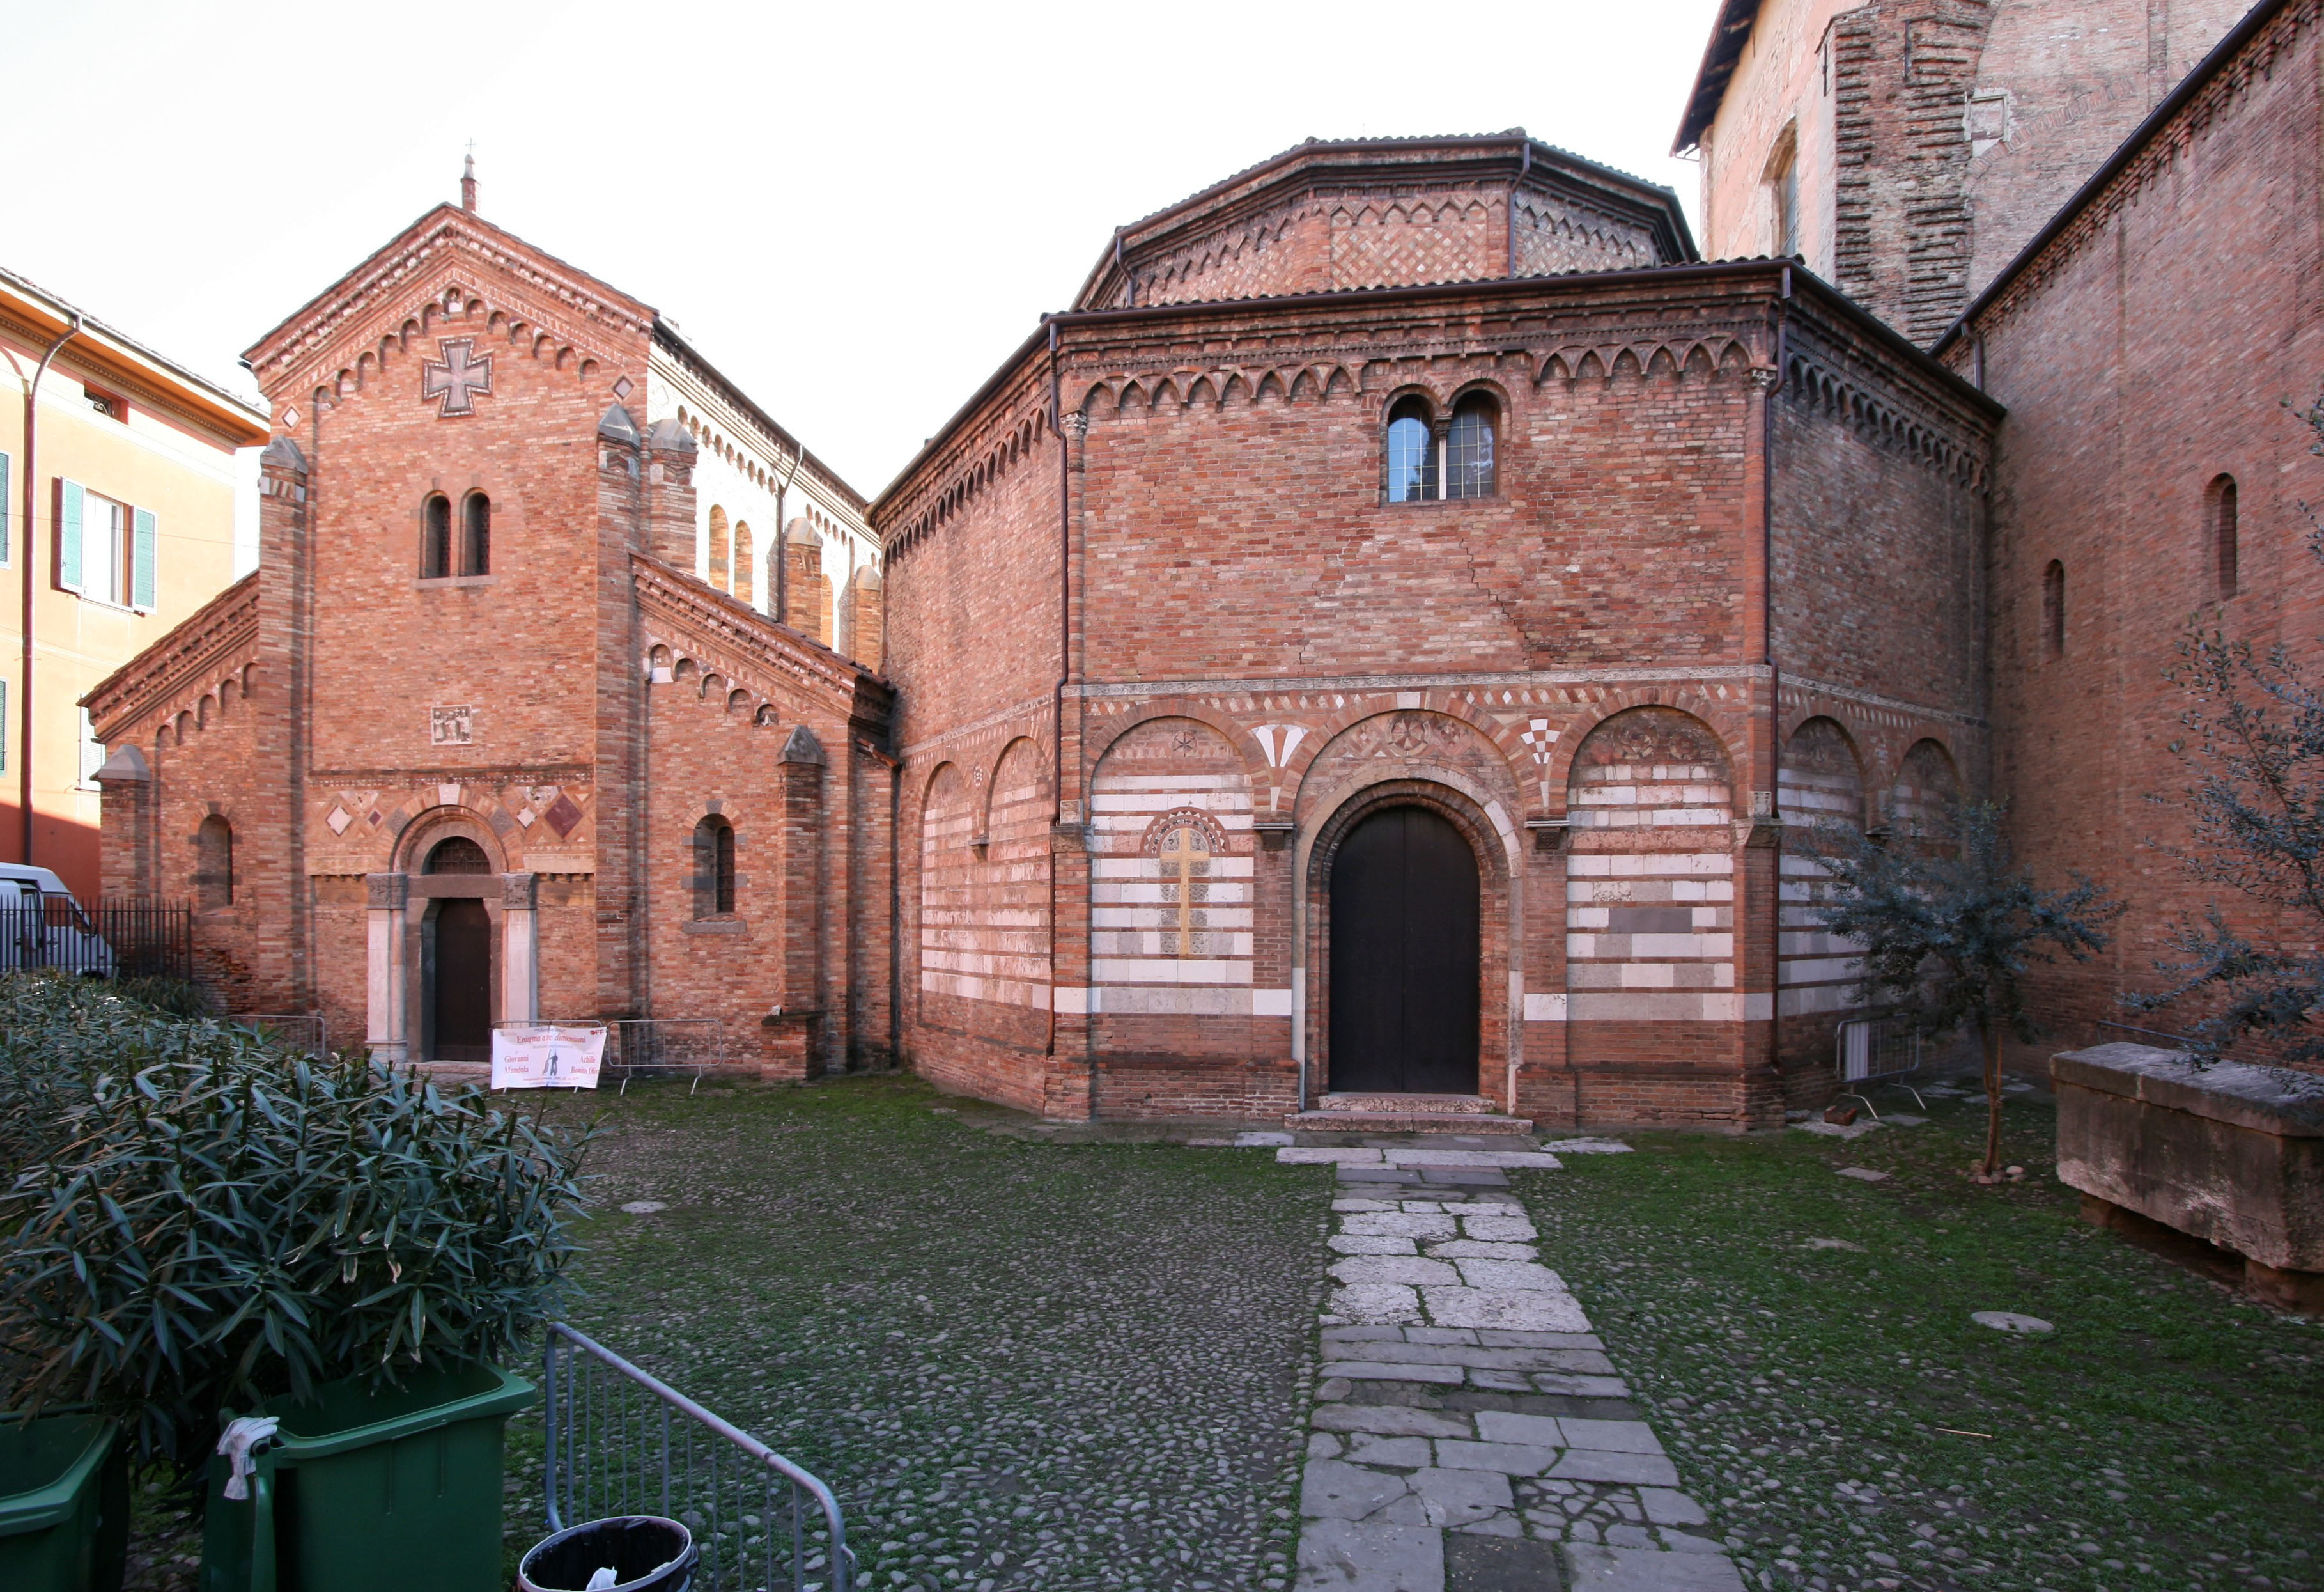 Chiese interesse storico a Bologna